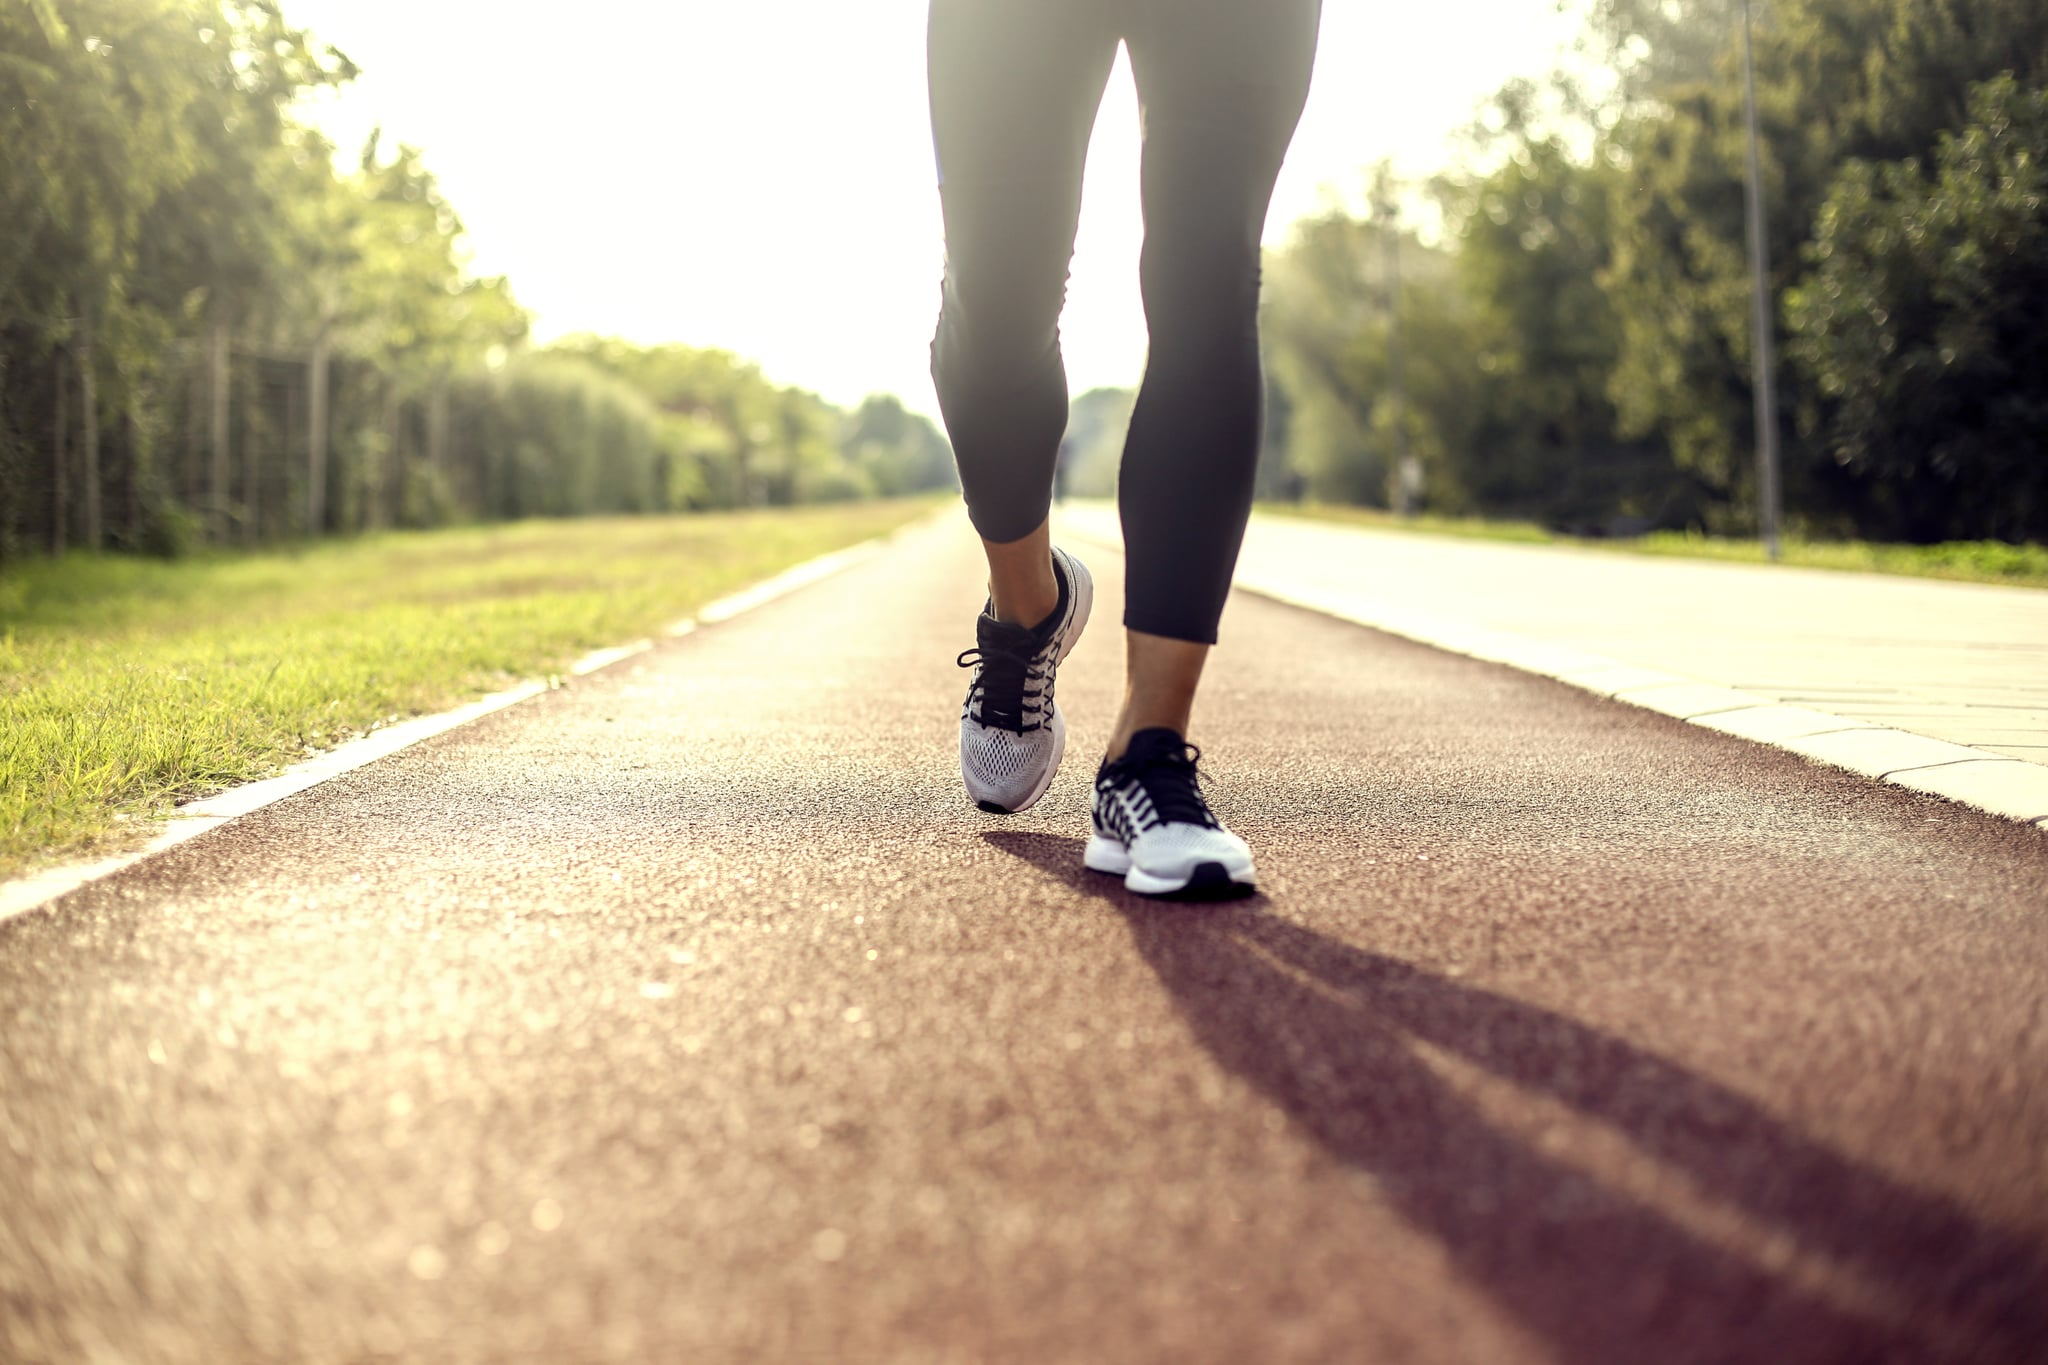 An Expert Explains the Proper Walking Form to Maximize Your Workout and Lose Weight